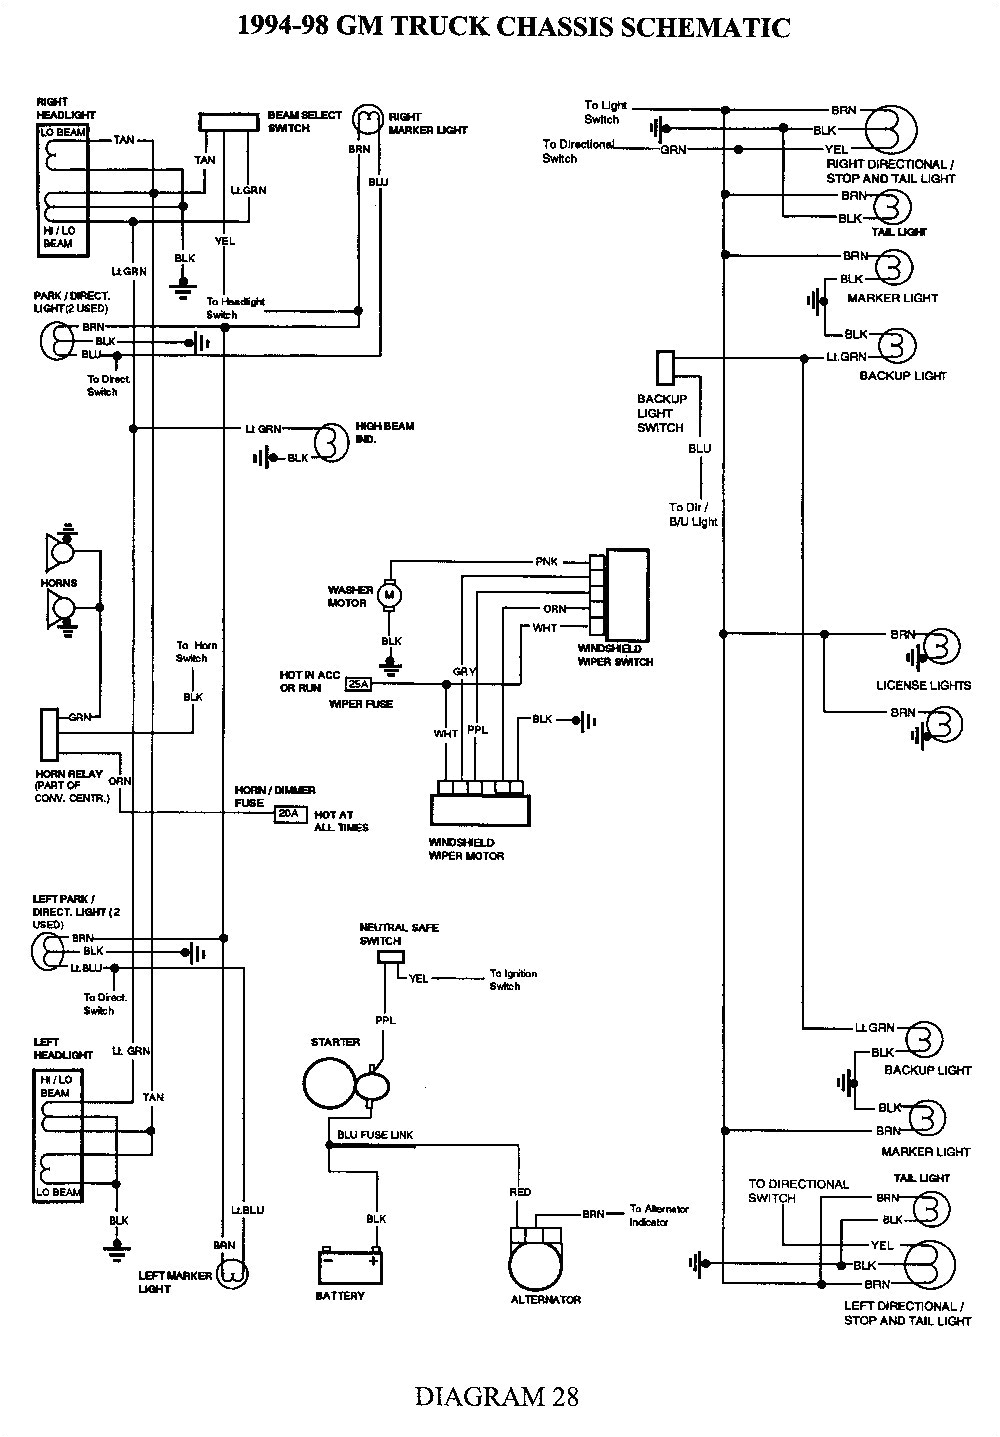 1951 chevy truck wiring harness diagram free download wiring chevy truck headlight switch wiring diagram free picture